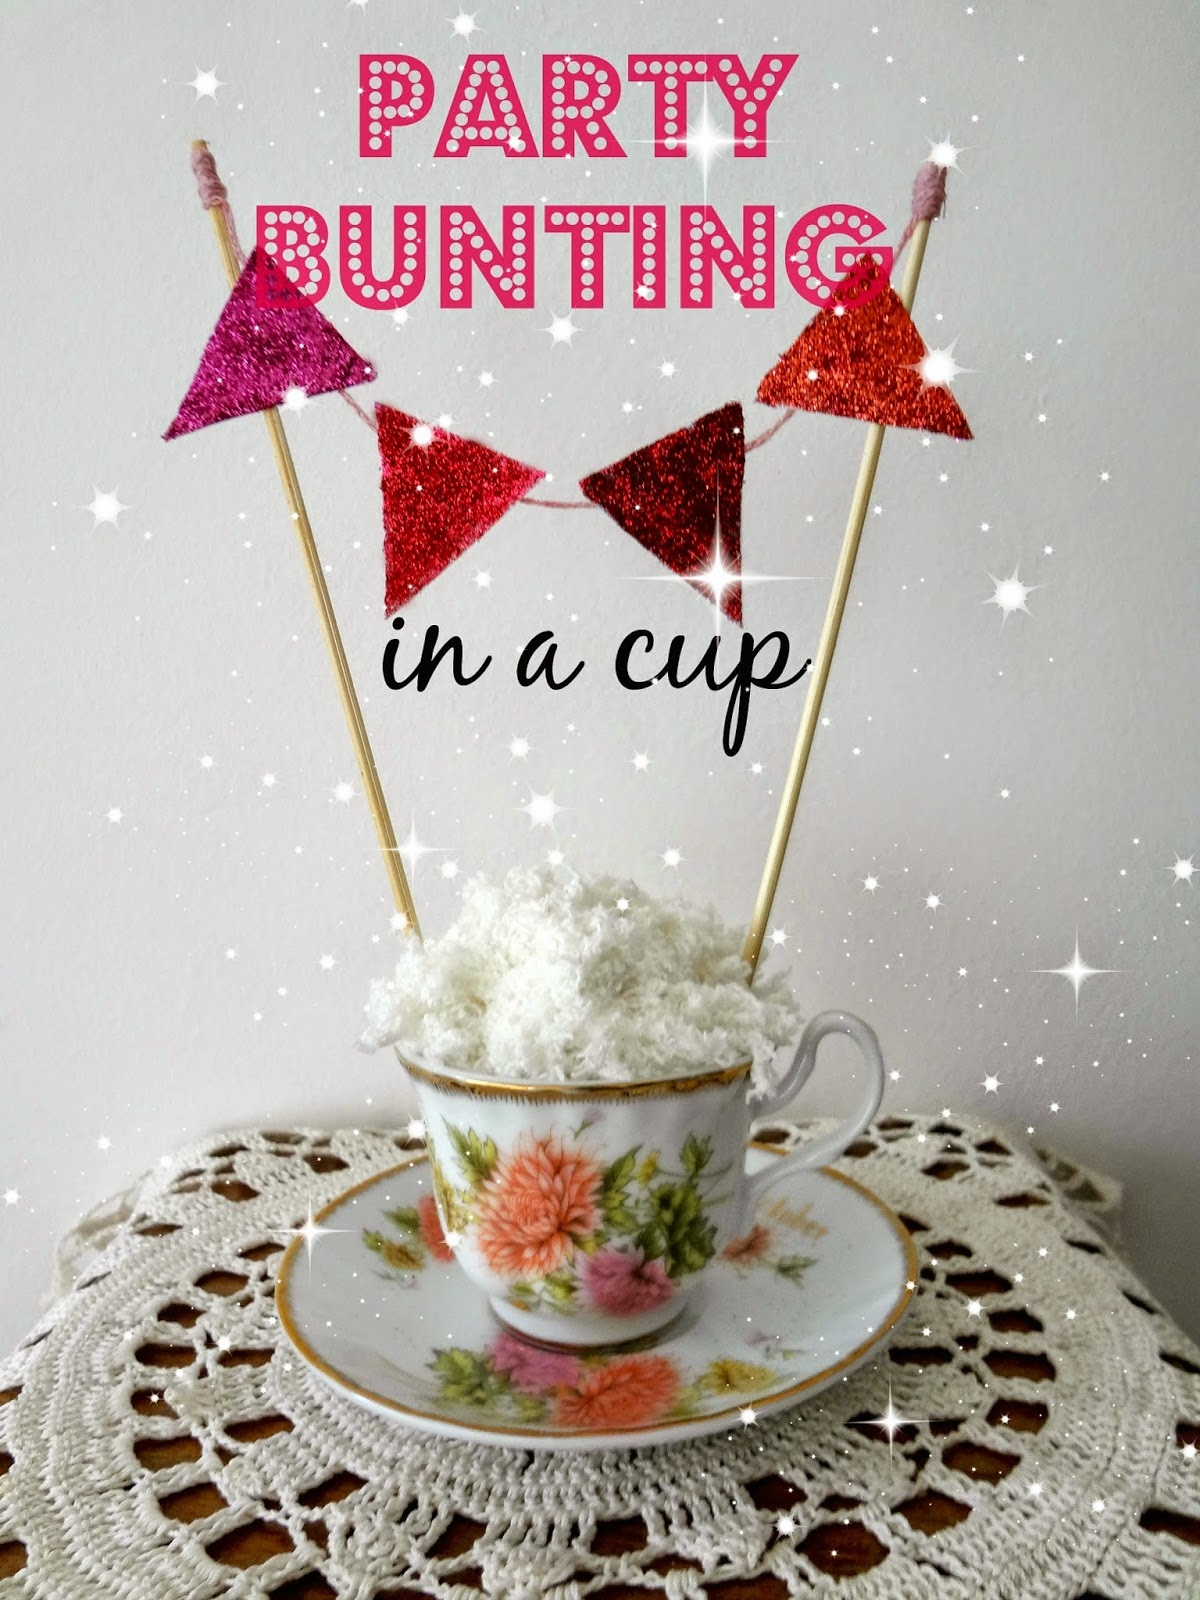 Party Bunting in a Cup Tutorial